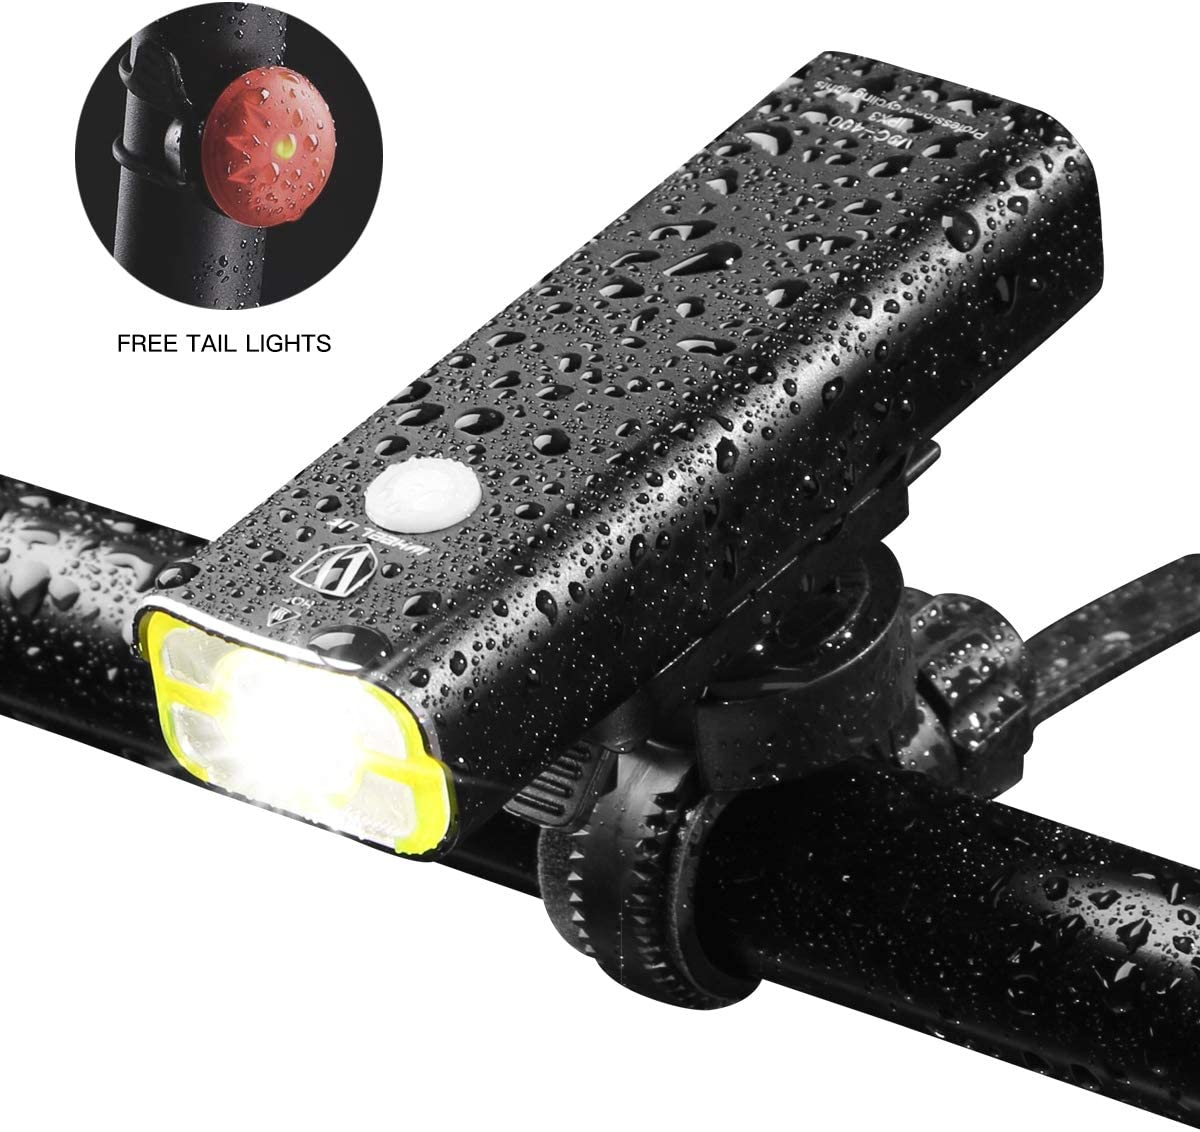 USB Rechargeable Bike Light,400 Lumens a Brighter Bicycle Light Wide Long Cover Range – 85 and Free Rear LED Bicycle Light,2500mah Lithium Battery,4 Light Mode Options, Water Resistant IPX4